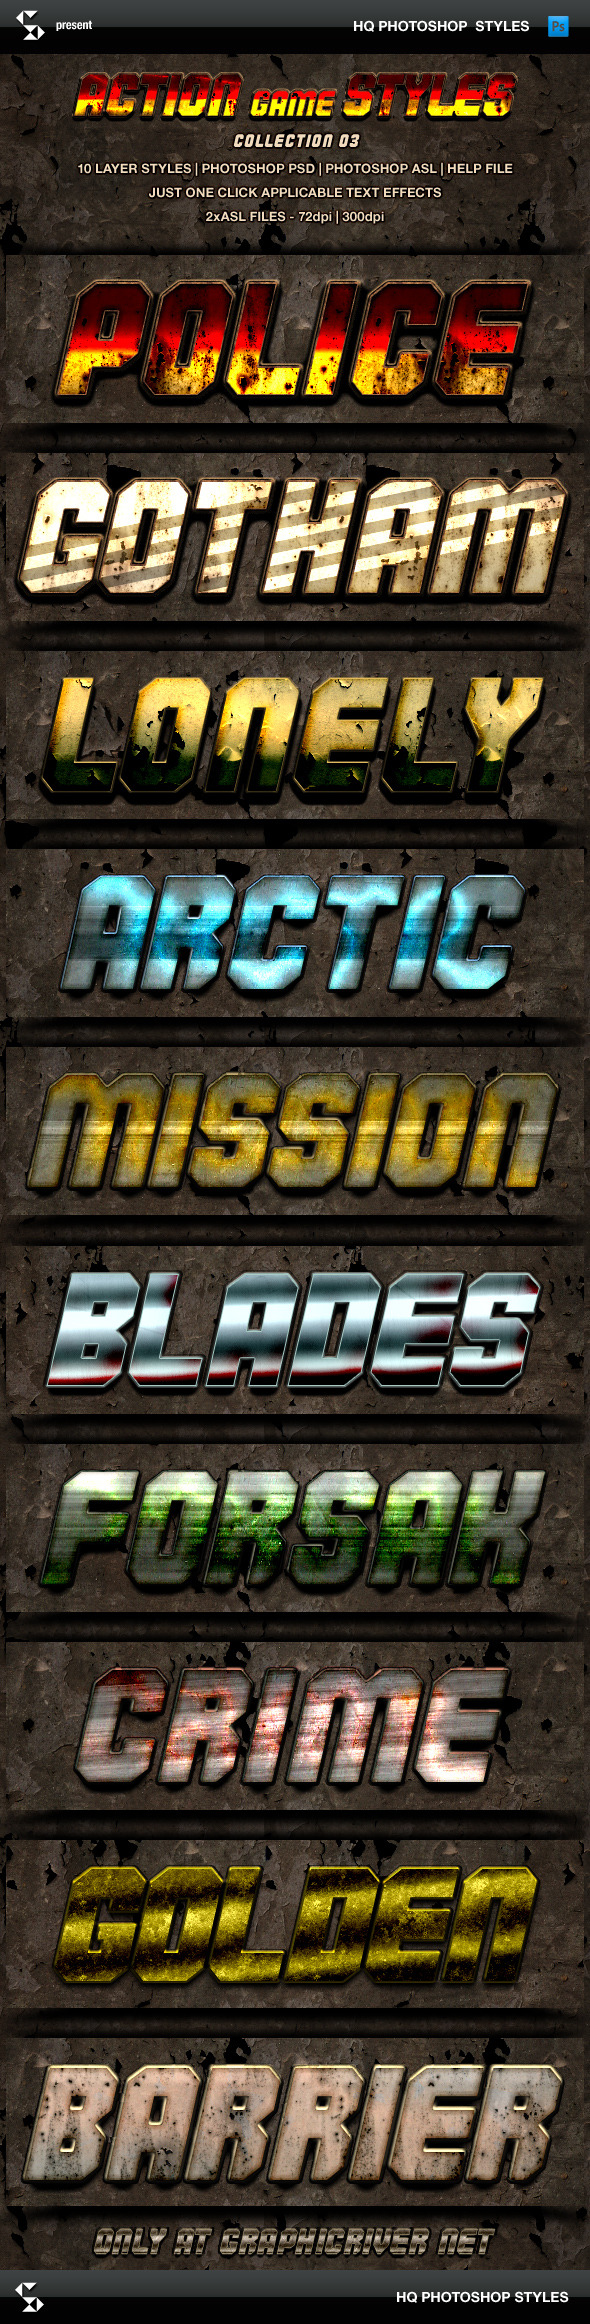 GraphicRiver Action Game Styles Collection 3 8933640